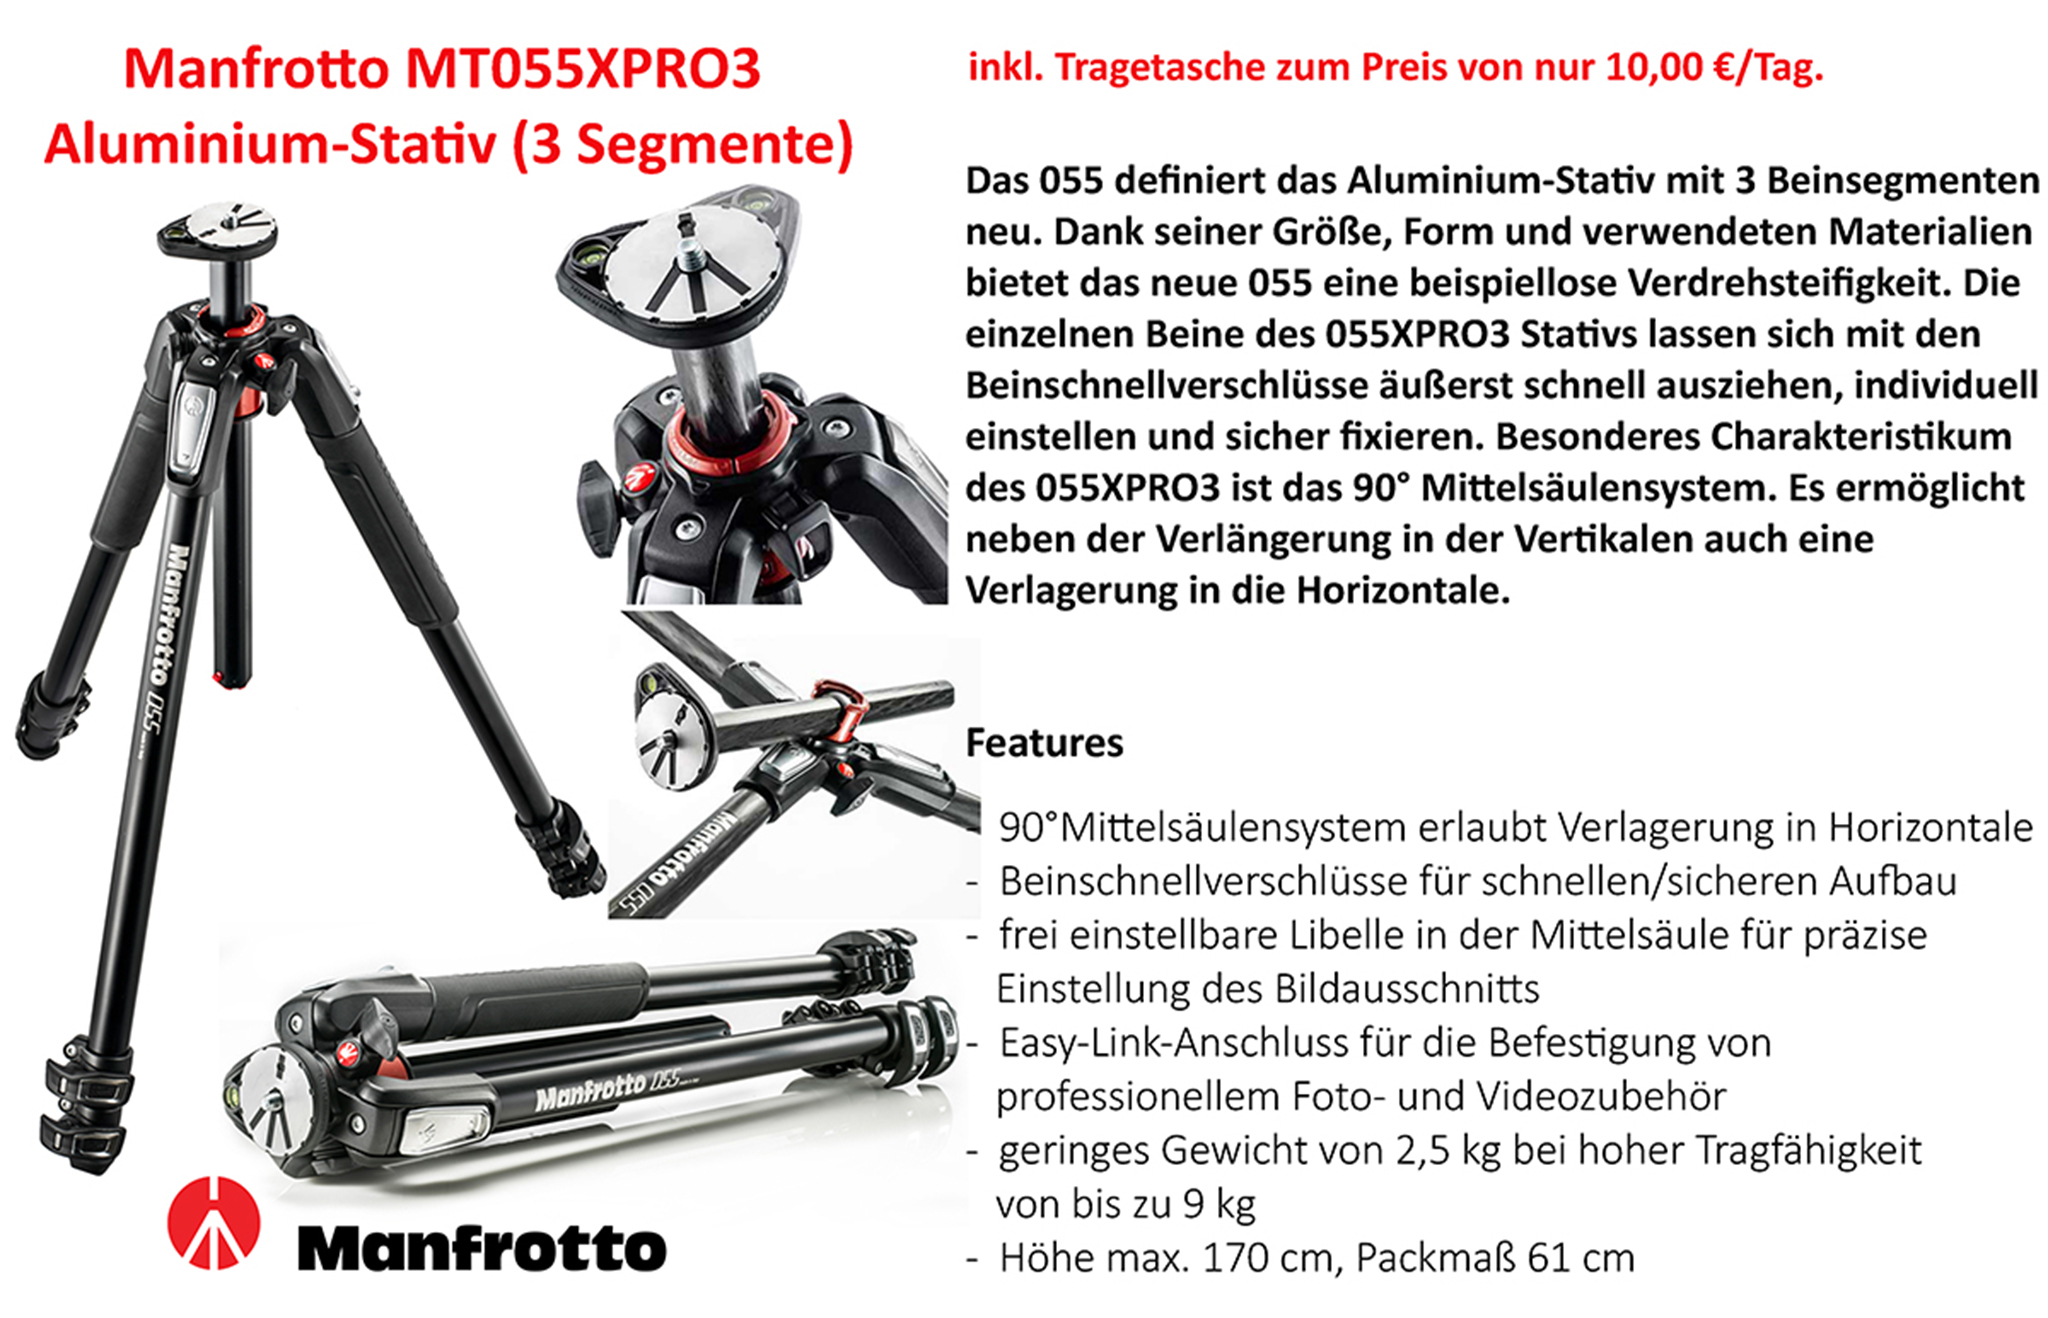 Manfrotto MT055XPRO3 Stativ